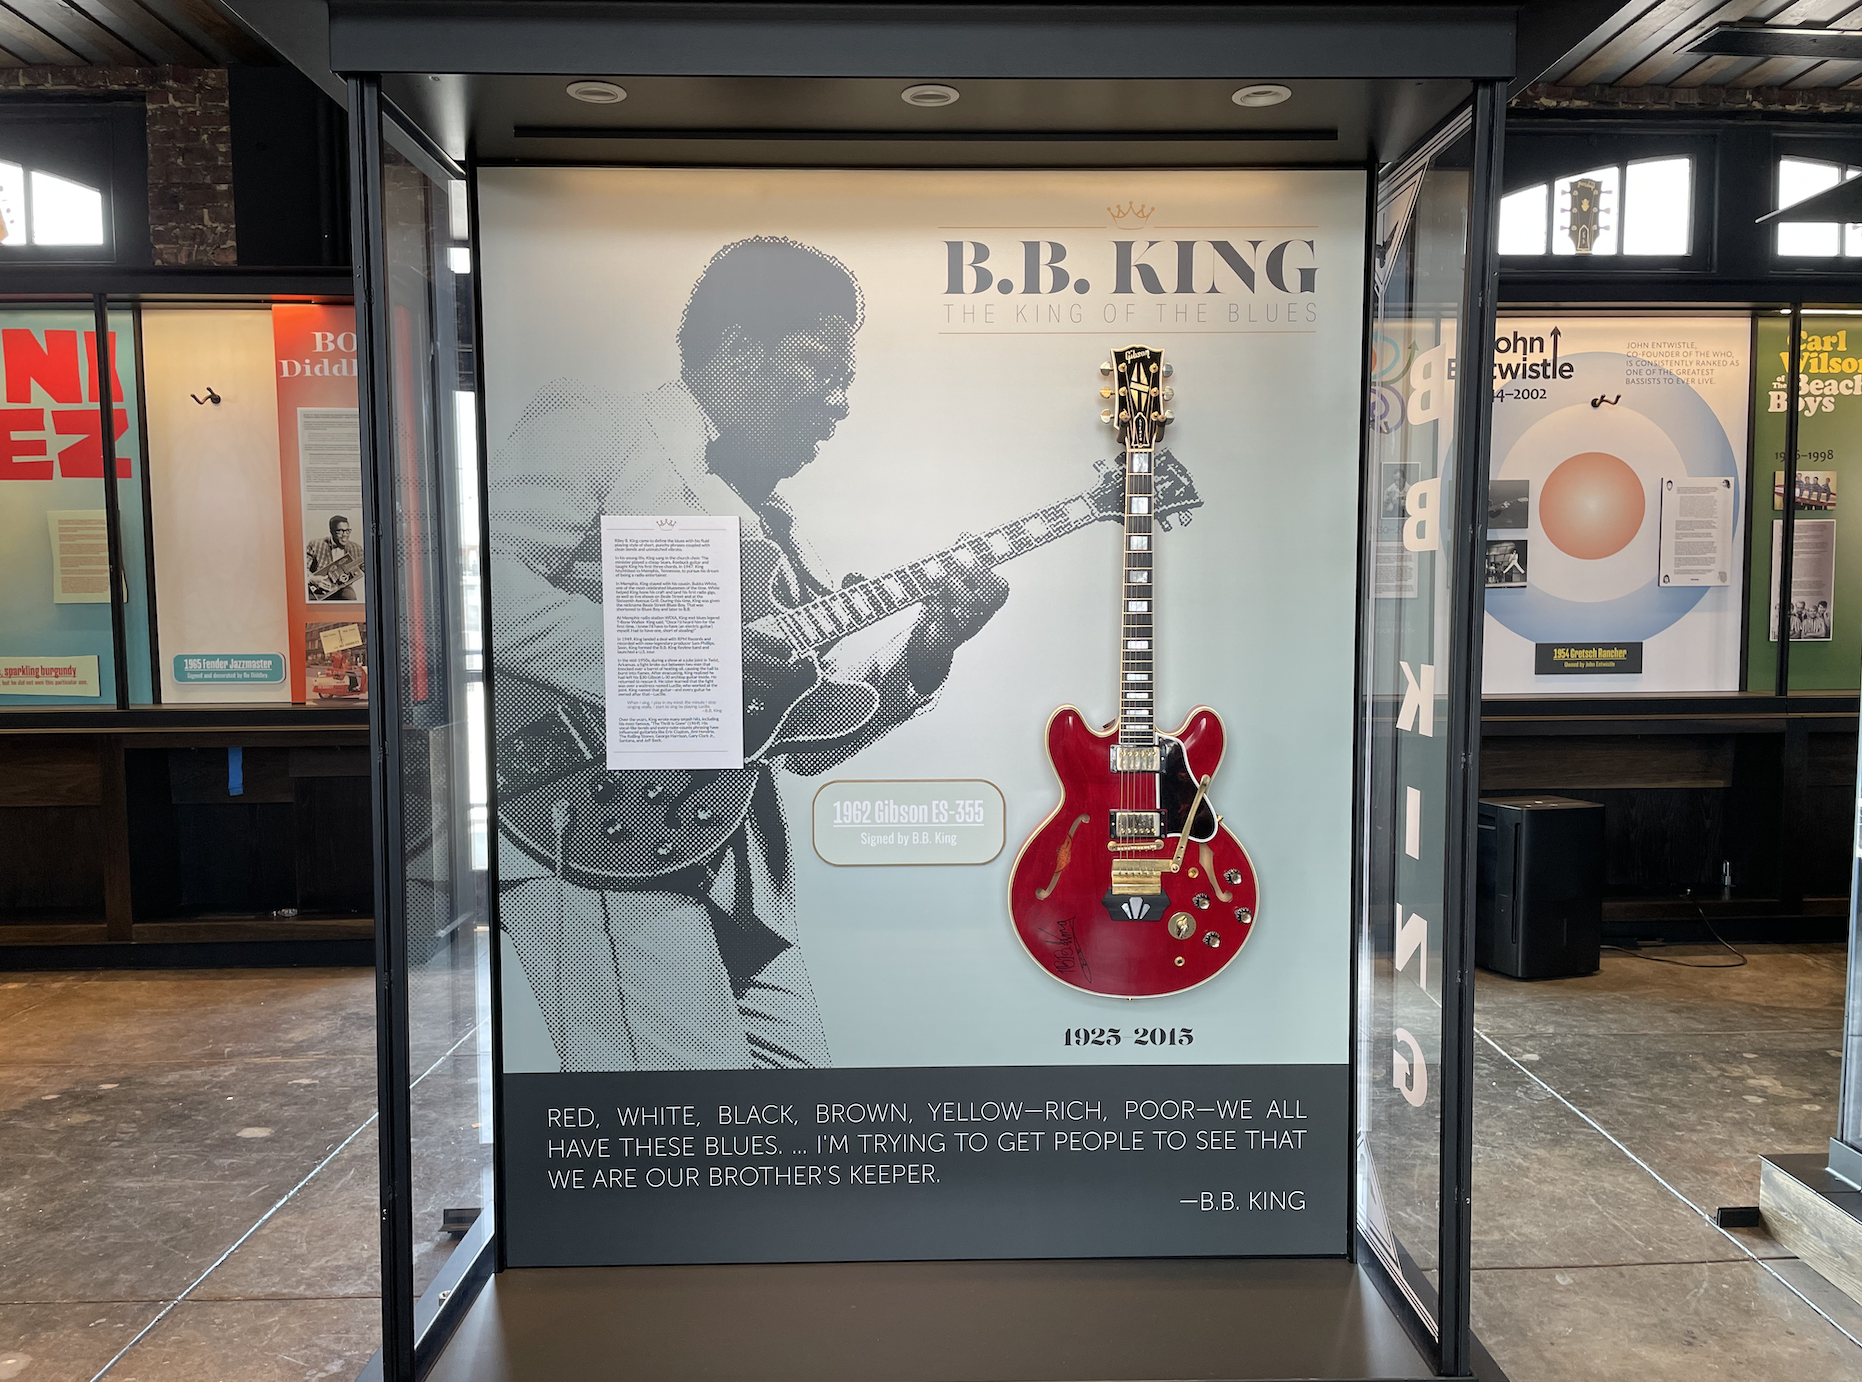 Photo of a glass display case showing an image of BB King and the words ''BB King'' displayed prominently. The display case also features a red electric guitar.